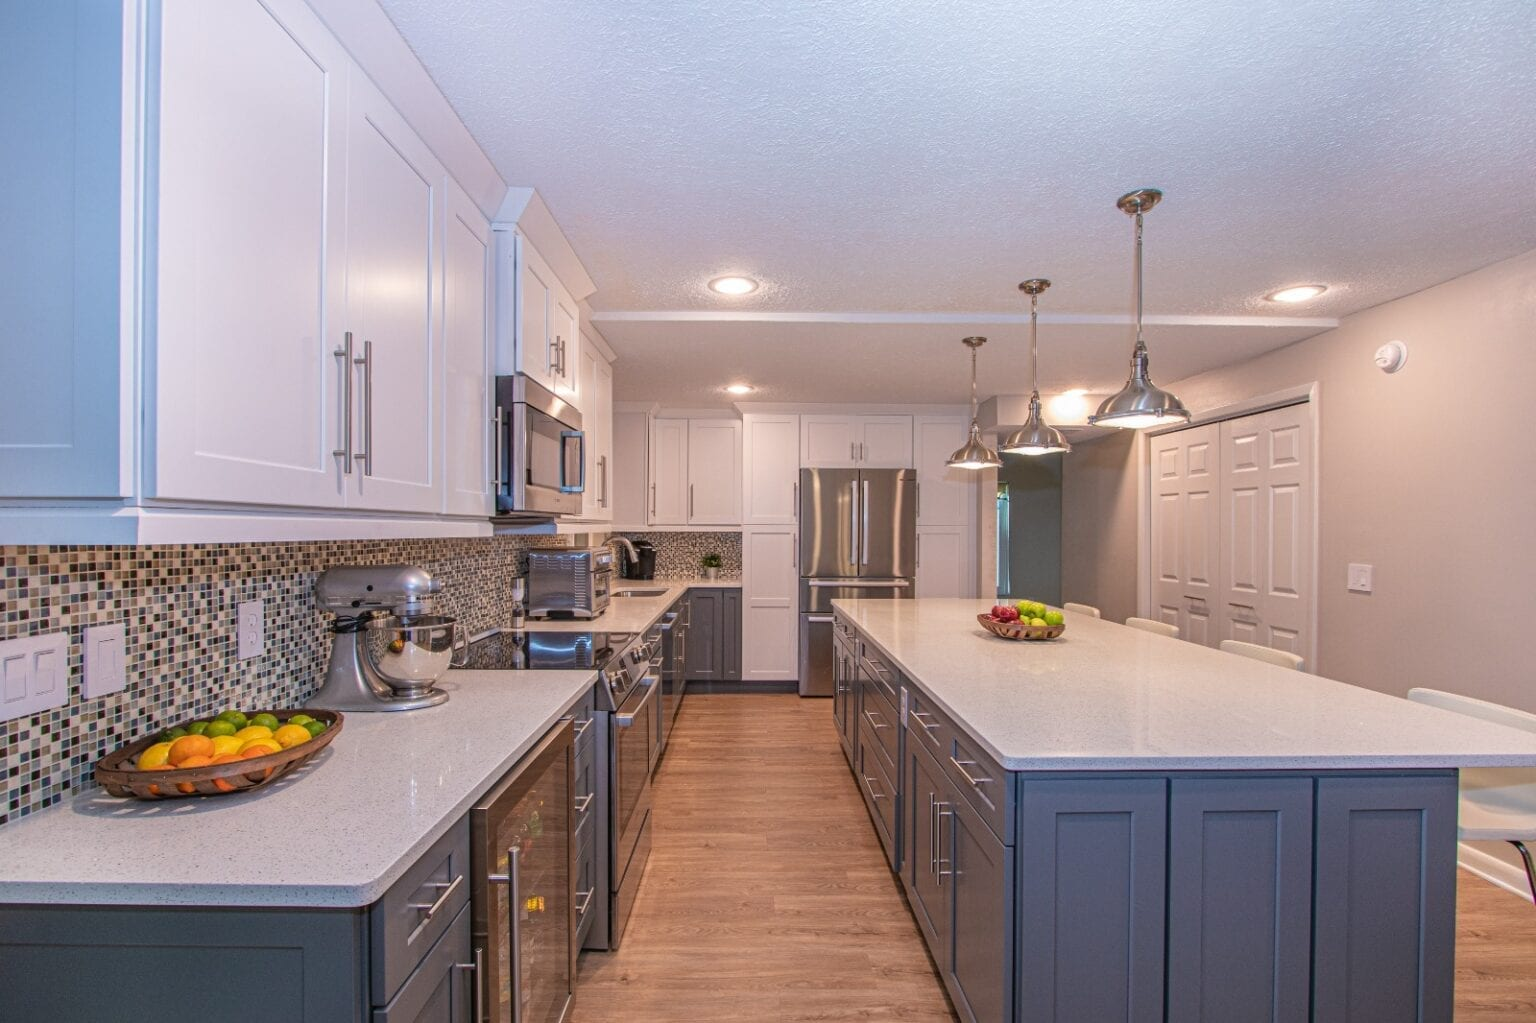 kitchen cabinets, Where to Buy New Kitchen Cabinets in Orlando? kitchen cabinets in tampa